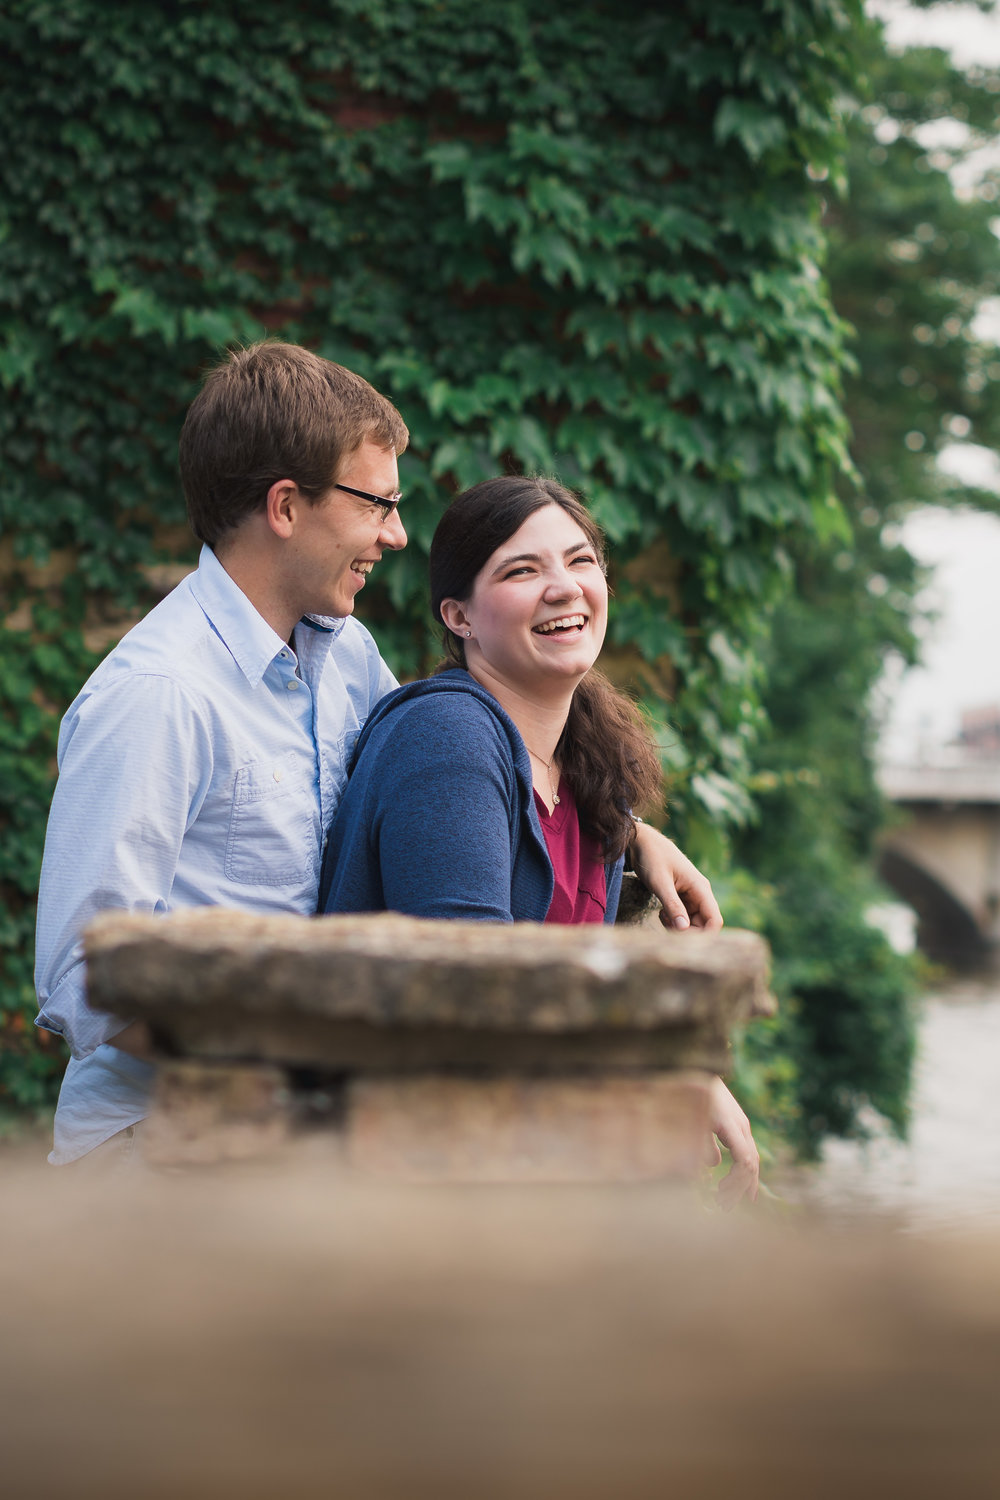 20180620_leslie_and_grant_engagement_18_5R3A0159.jpg